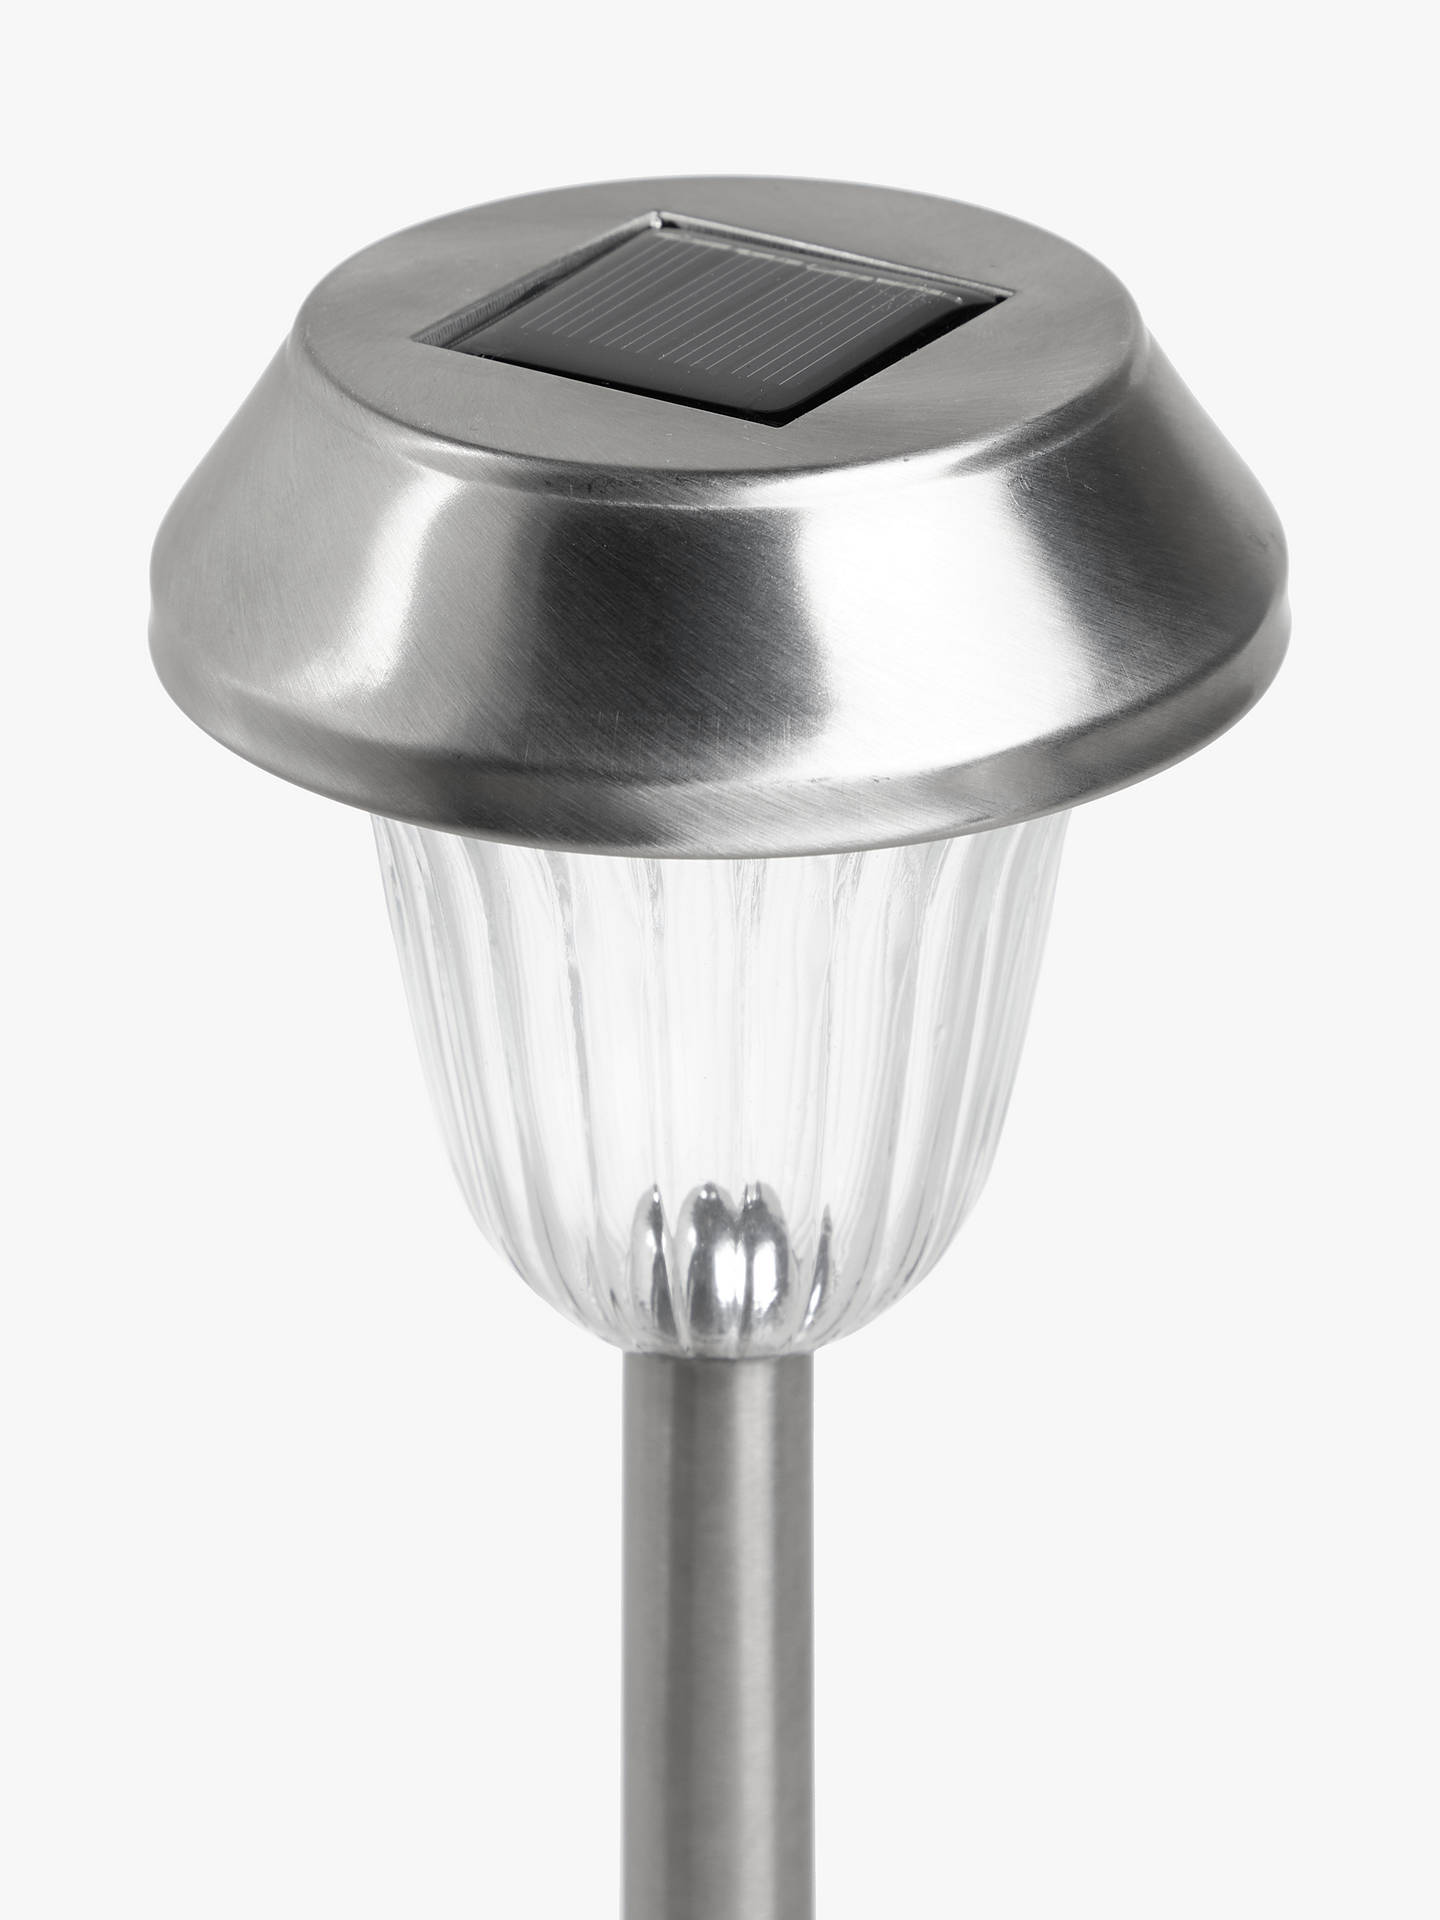 Buy John Lewis & Partners Onslow Solar LED Outdoor Stake Lights, Chrome, Set of 2 Online at johnlewis.com